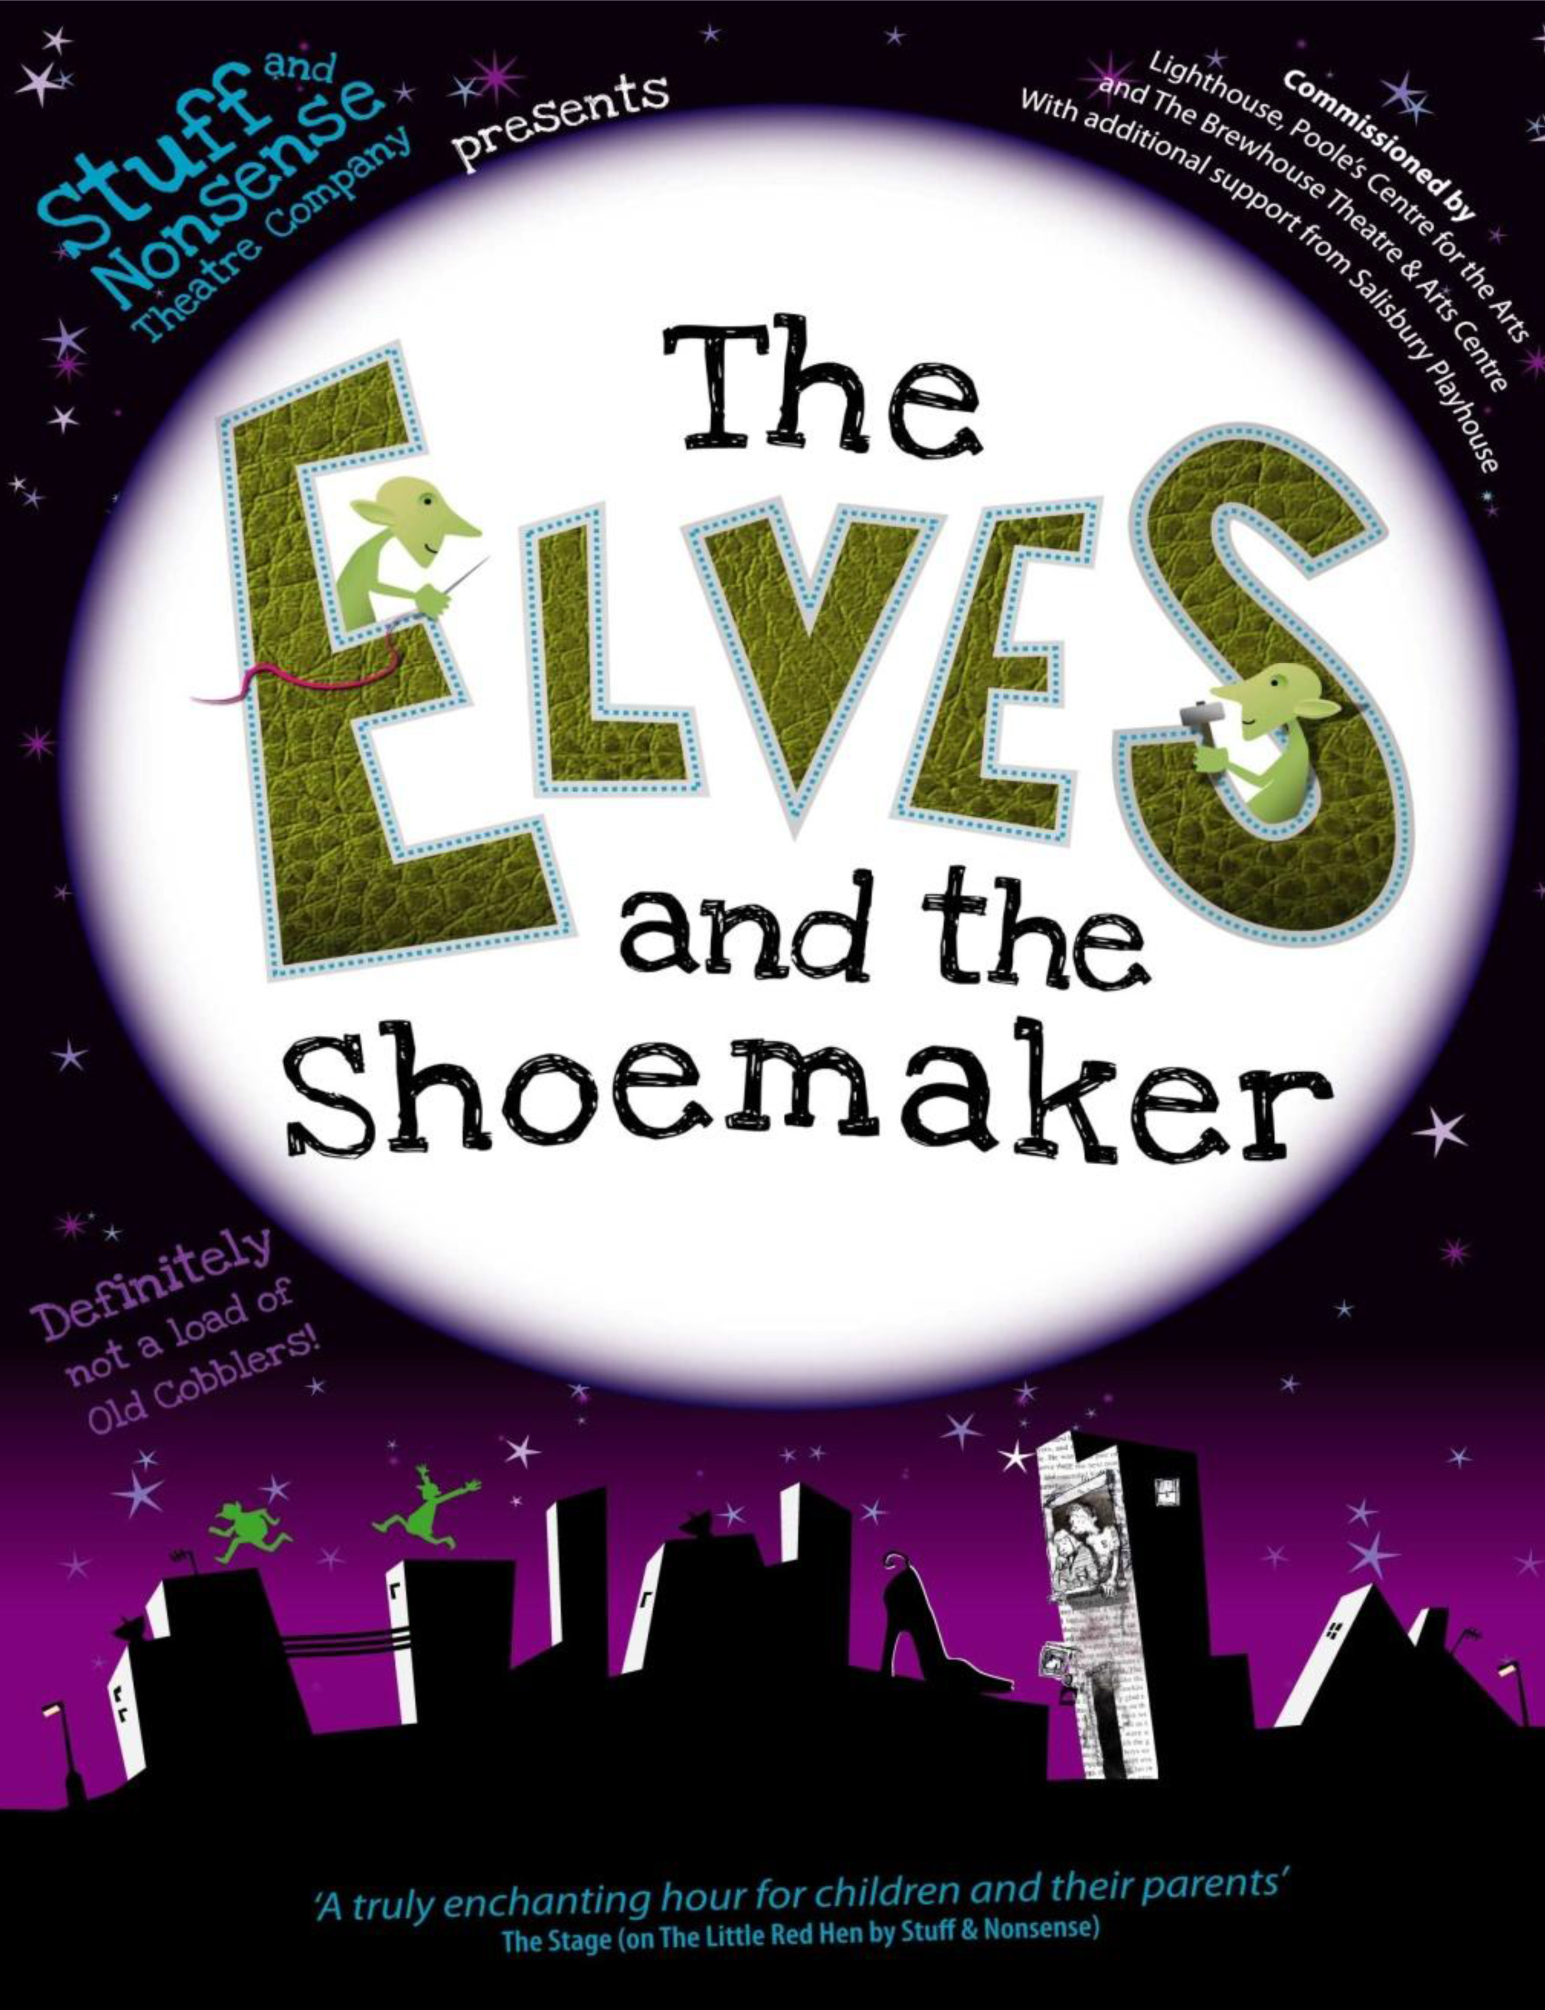 1156The Elves and the Shoemaker